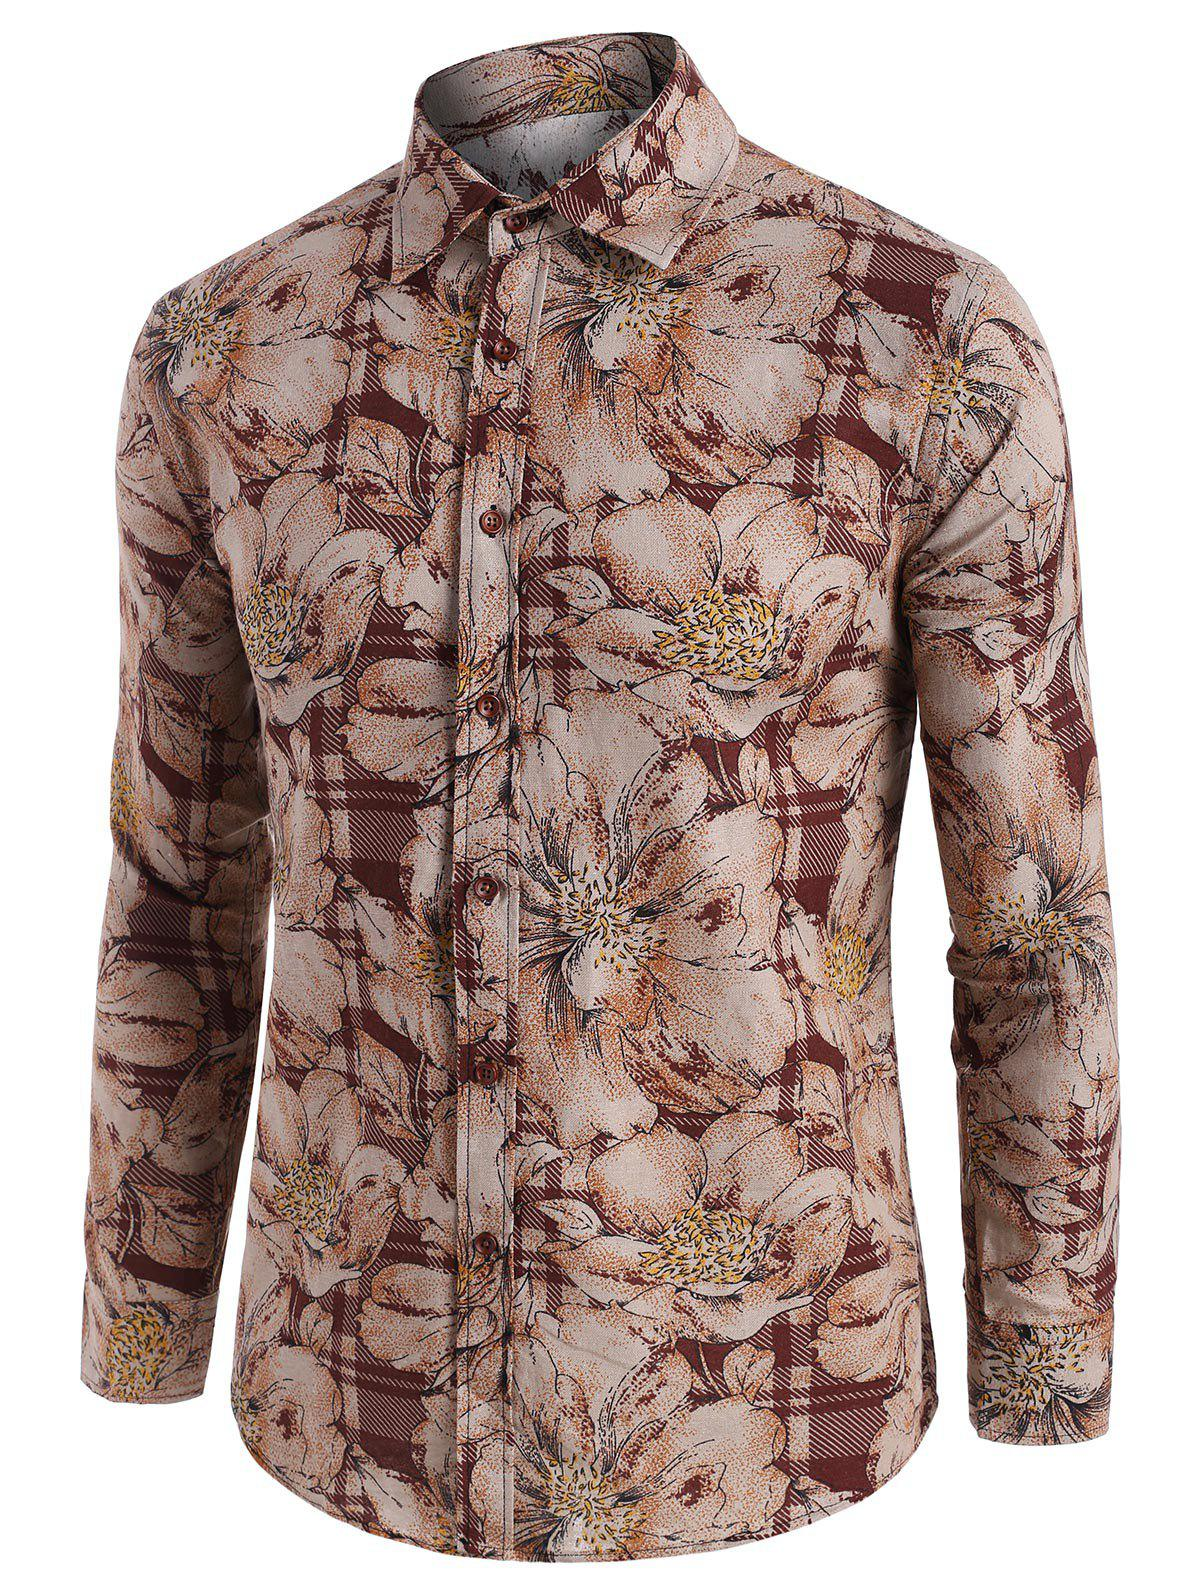 Hot Wildflower Print Vintage Long Sleeve Shirt